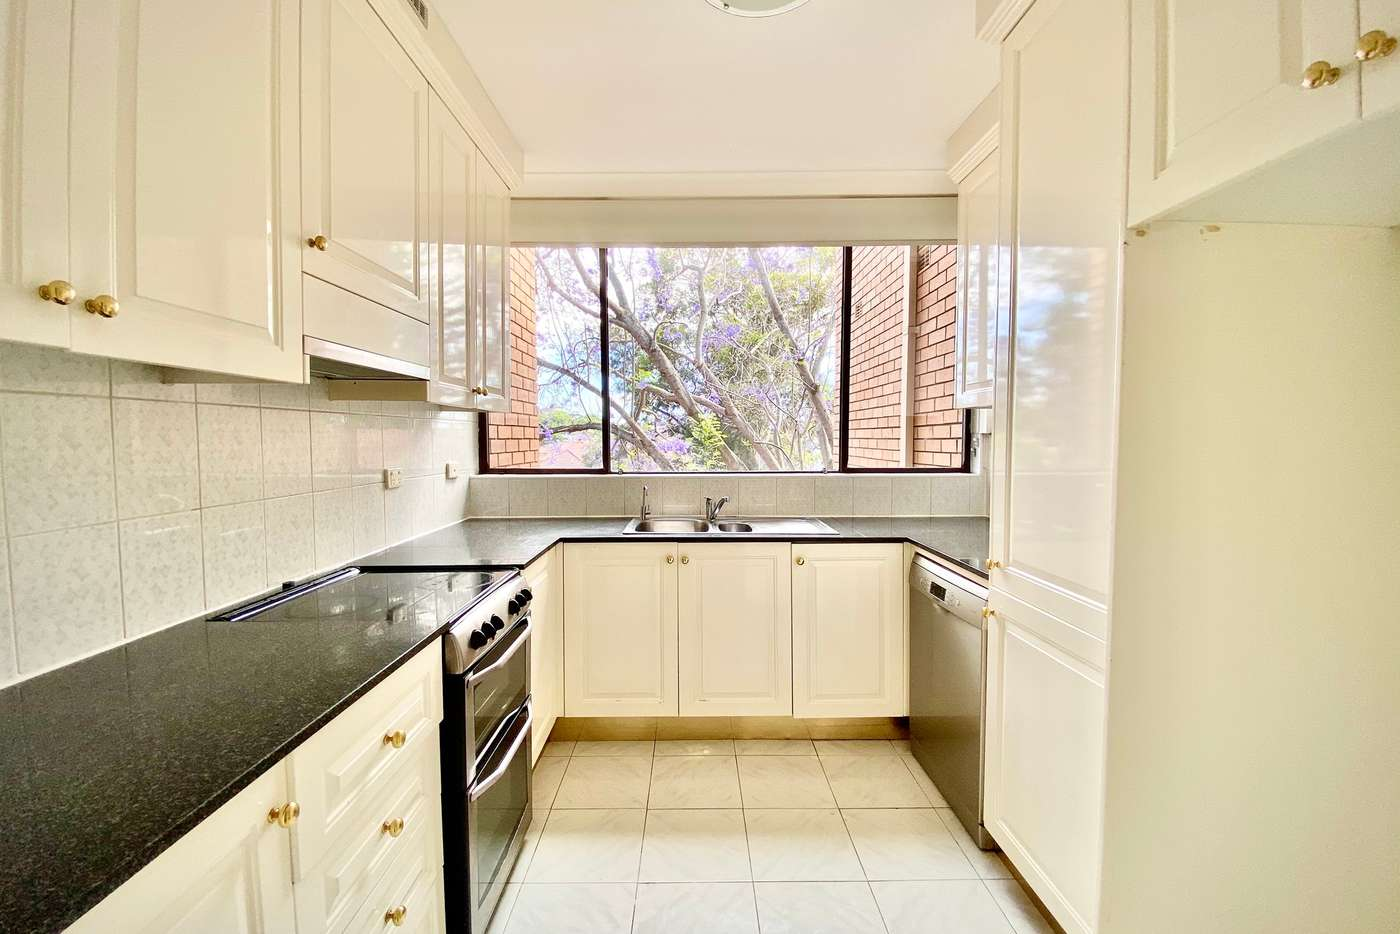 Main view of Homely apartment listing, 33/22 Tunbridge Street, Mascot NSW 2020